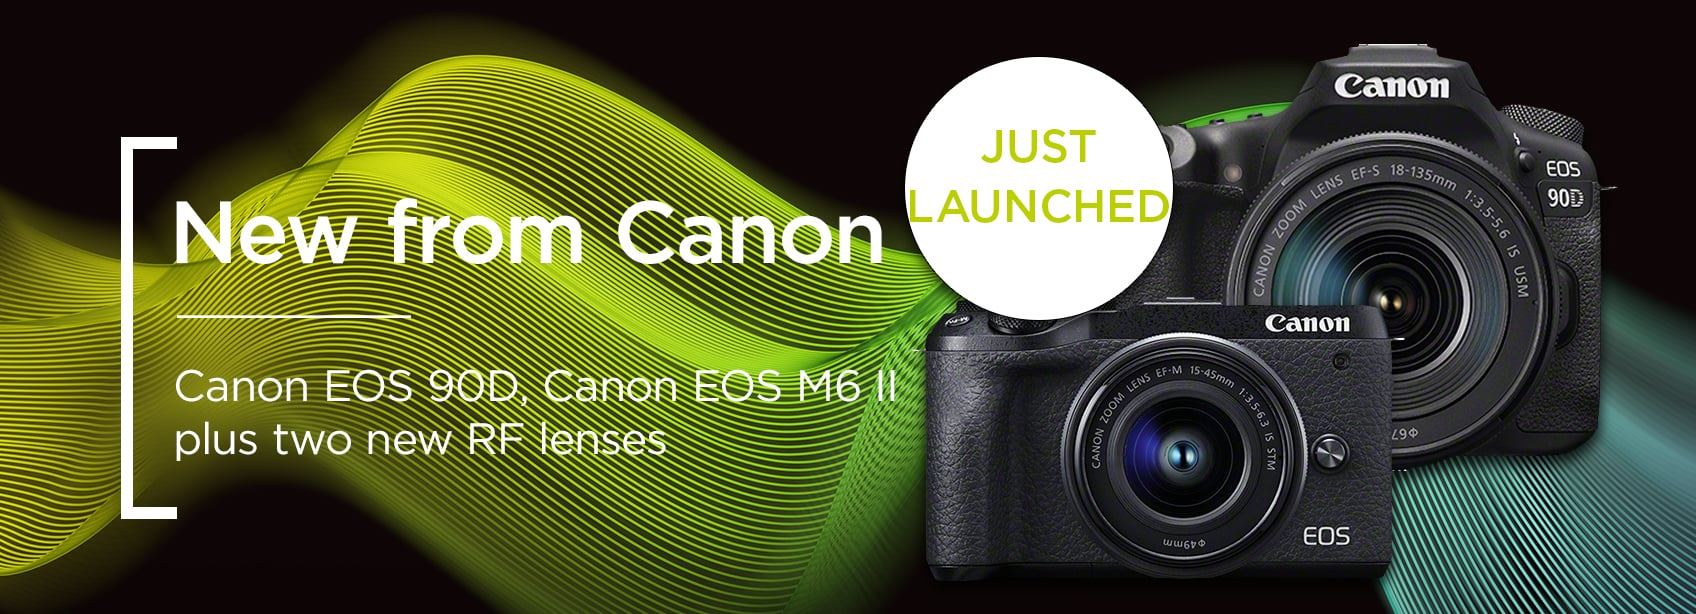 New from Canon - EOS 90D, EOS M6 II plus two new RF lenses